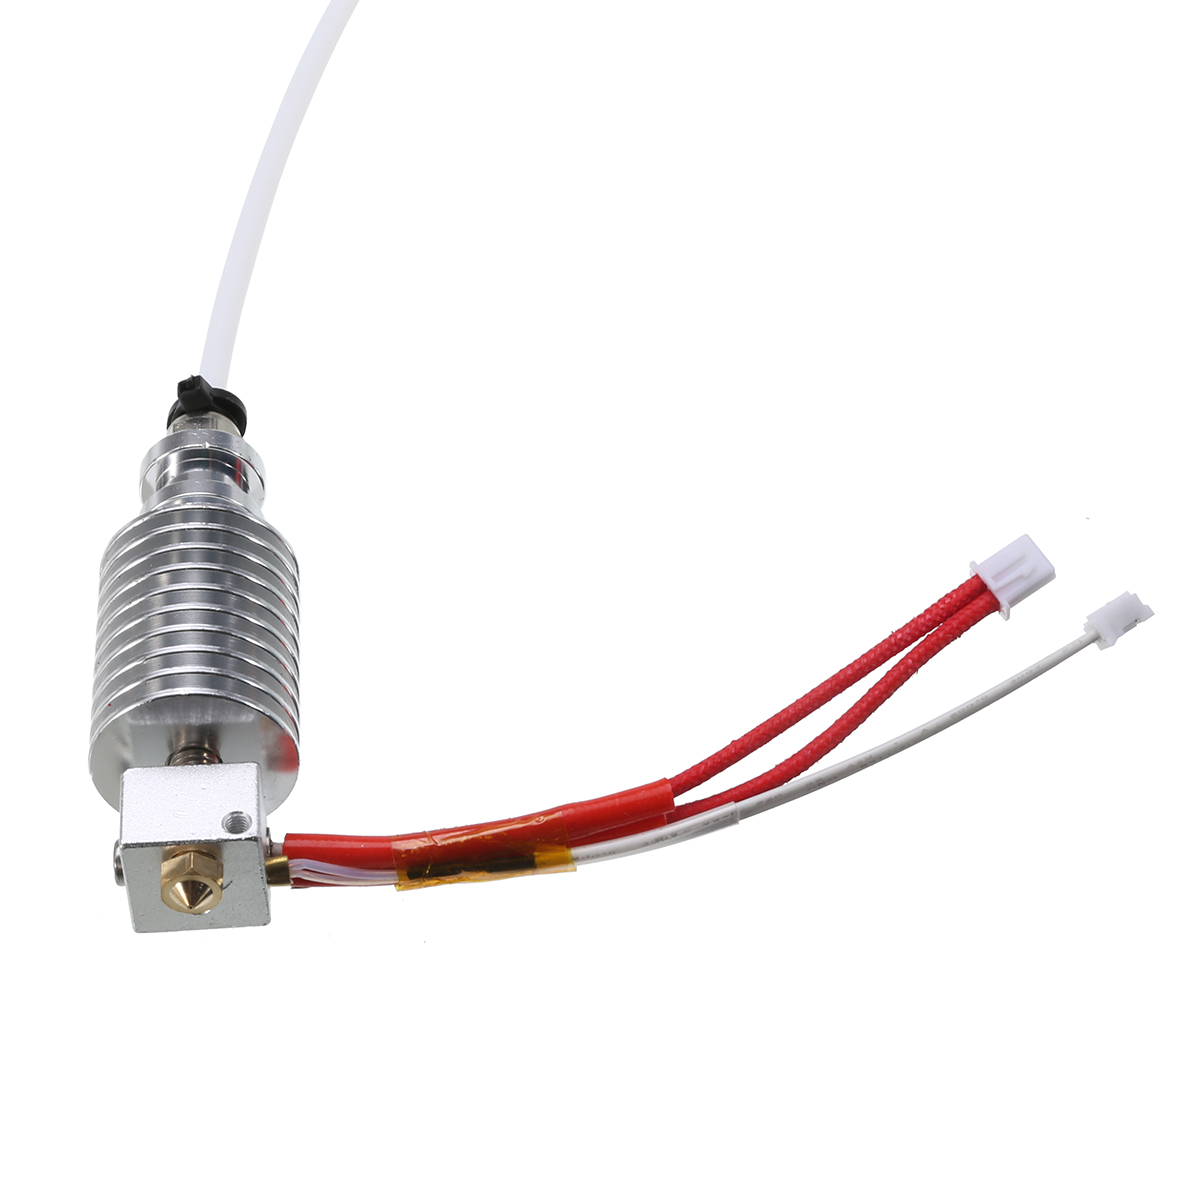 3D Printer Accessories Updated Straight-type V5 J-head Hot End 0.4mm / 1.75mm For Anycubic I3 Mega 3D Printer Extruder